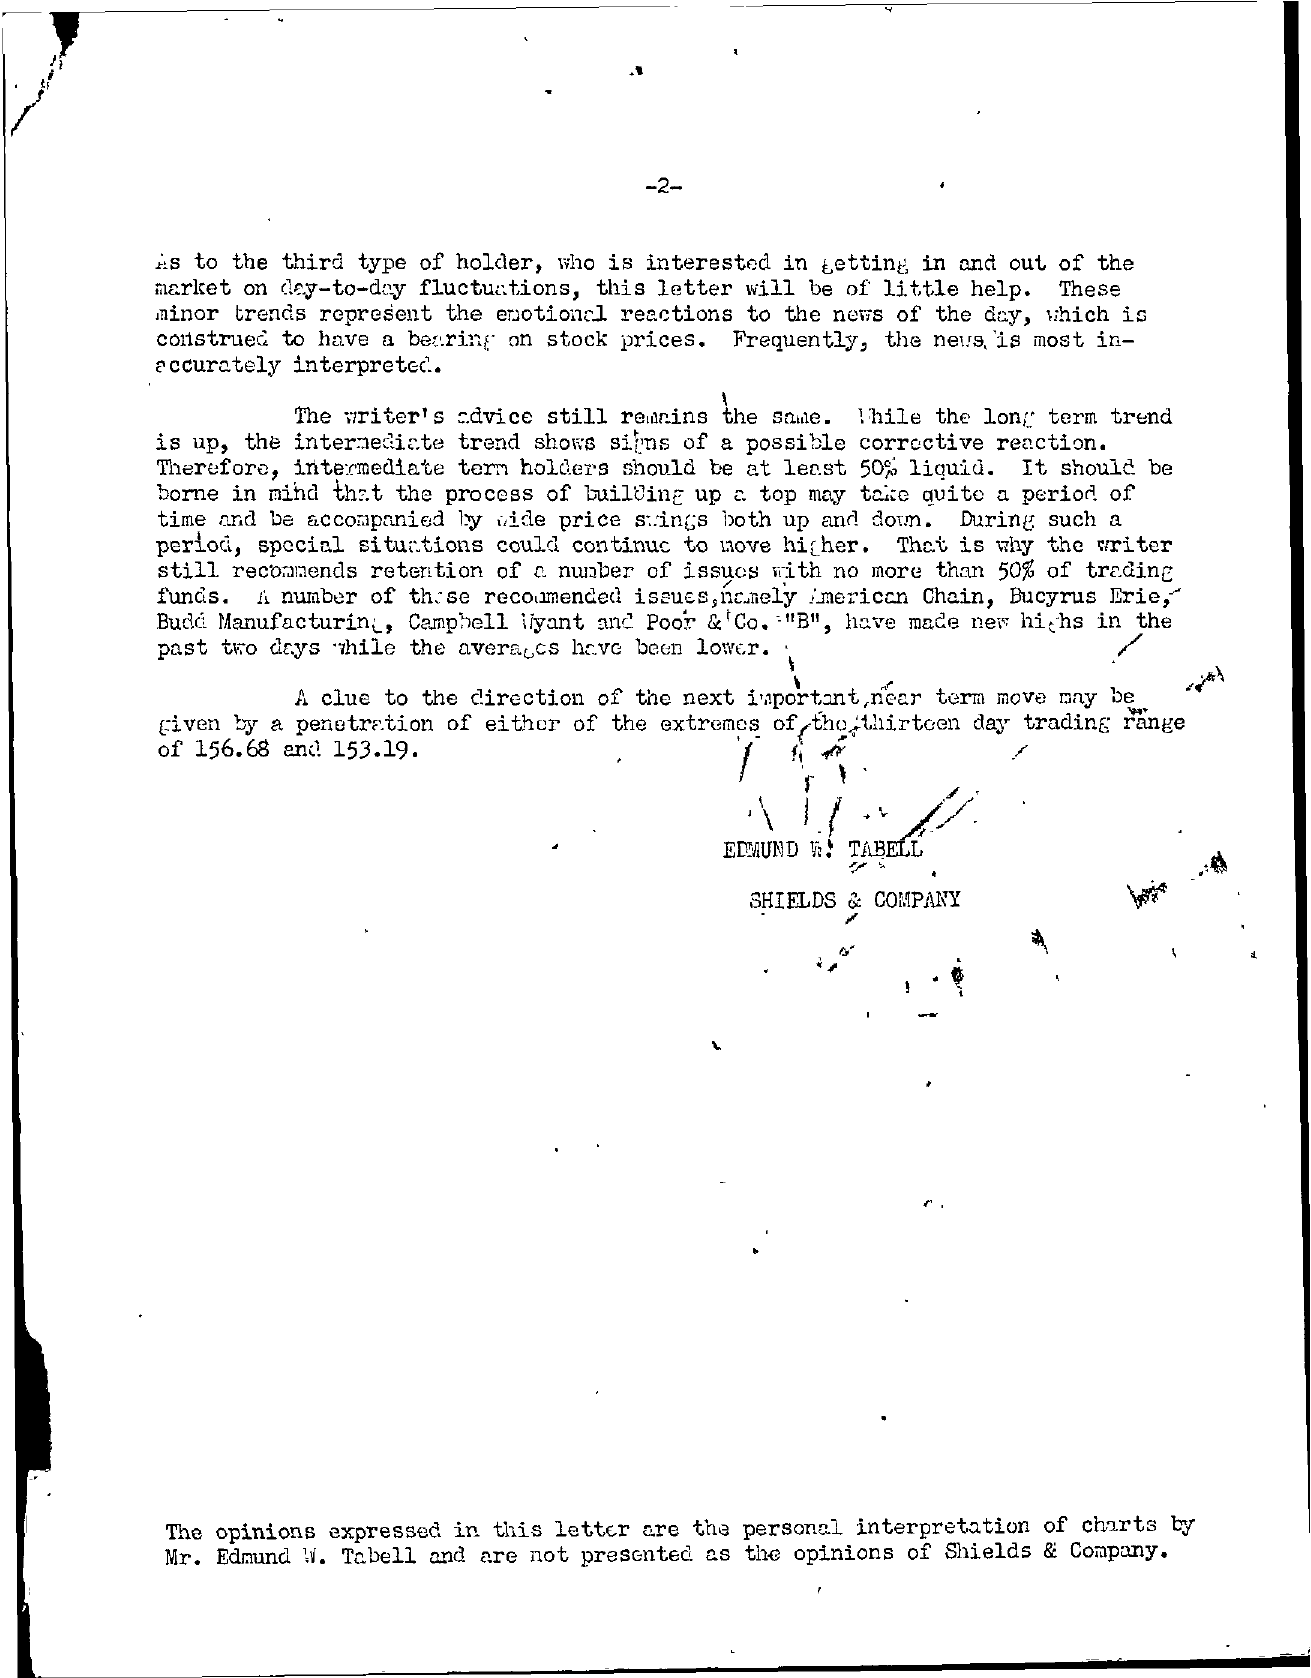 Tabell's Market Letter - January 18, 1945 page 2